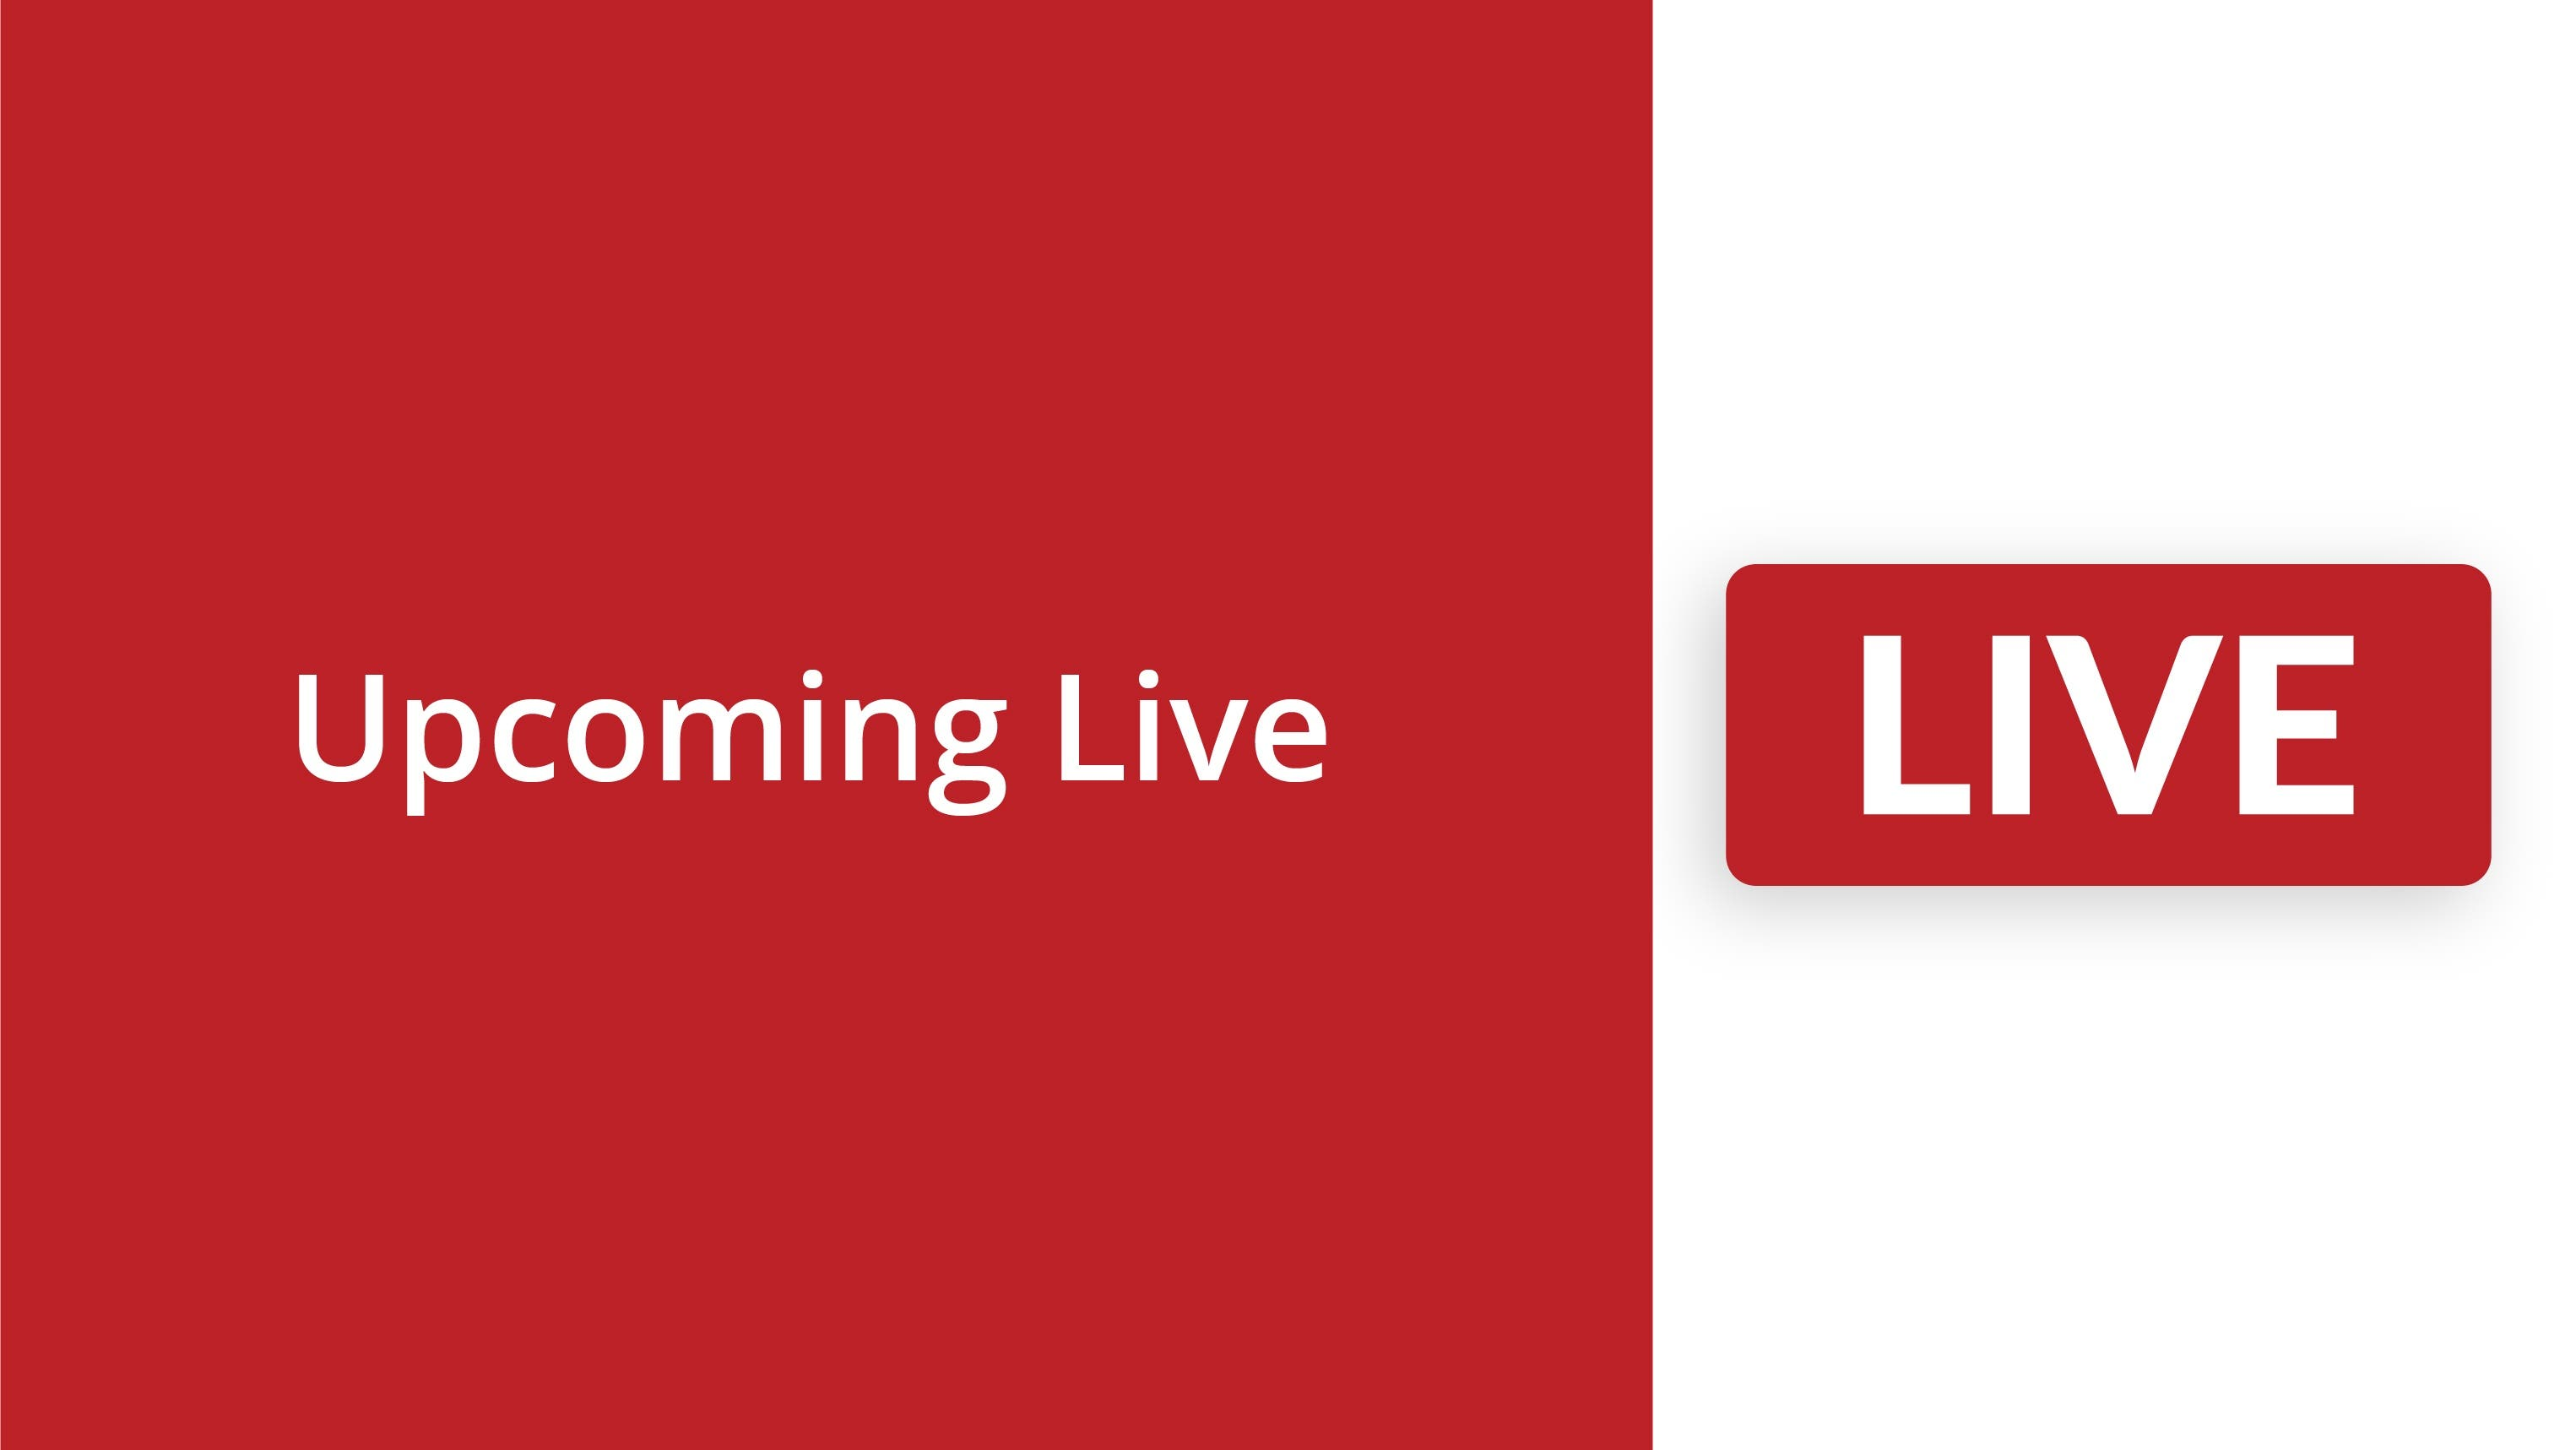 Upcoming Live